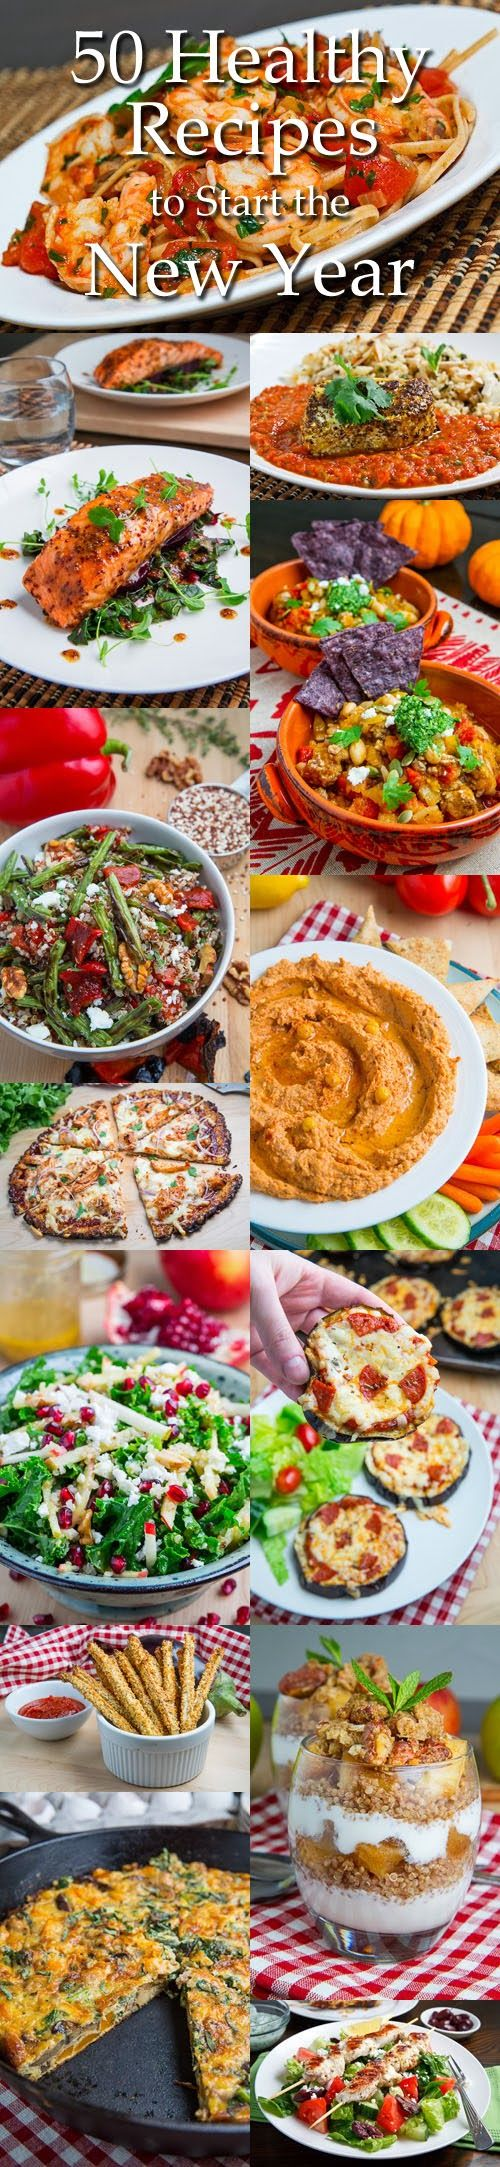 50 Healthy Recipes to Start the New Year